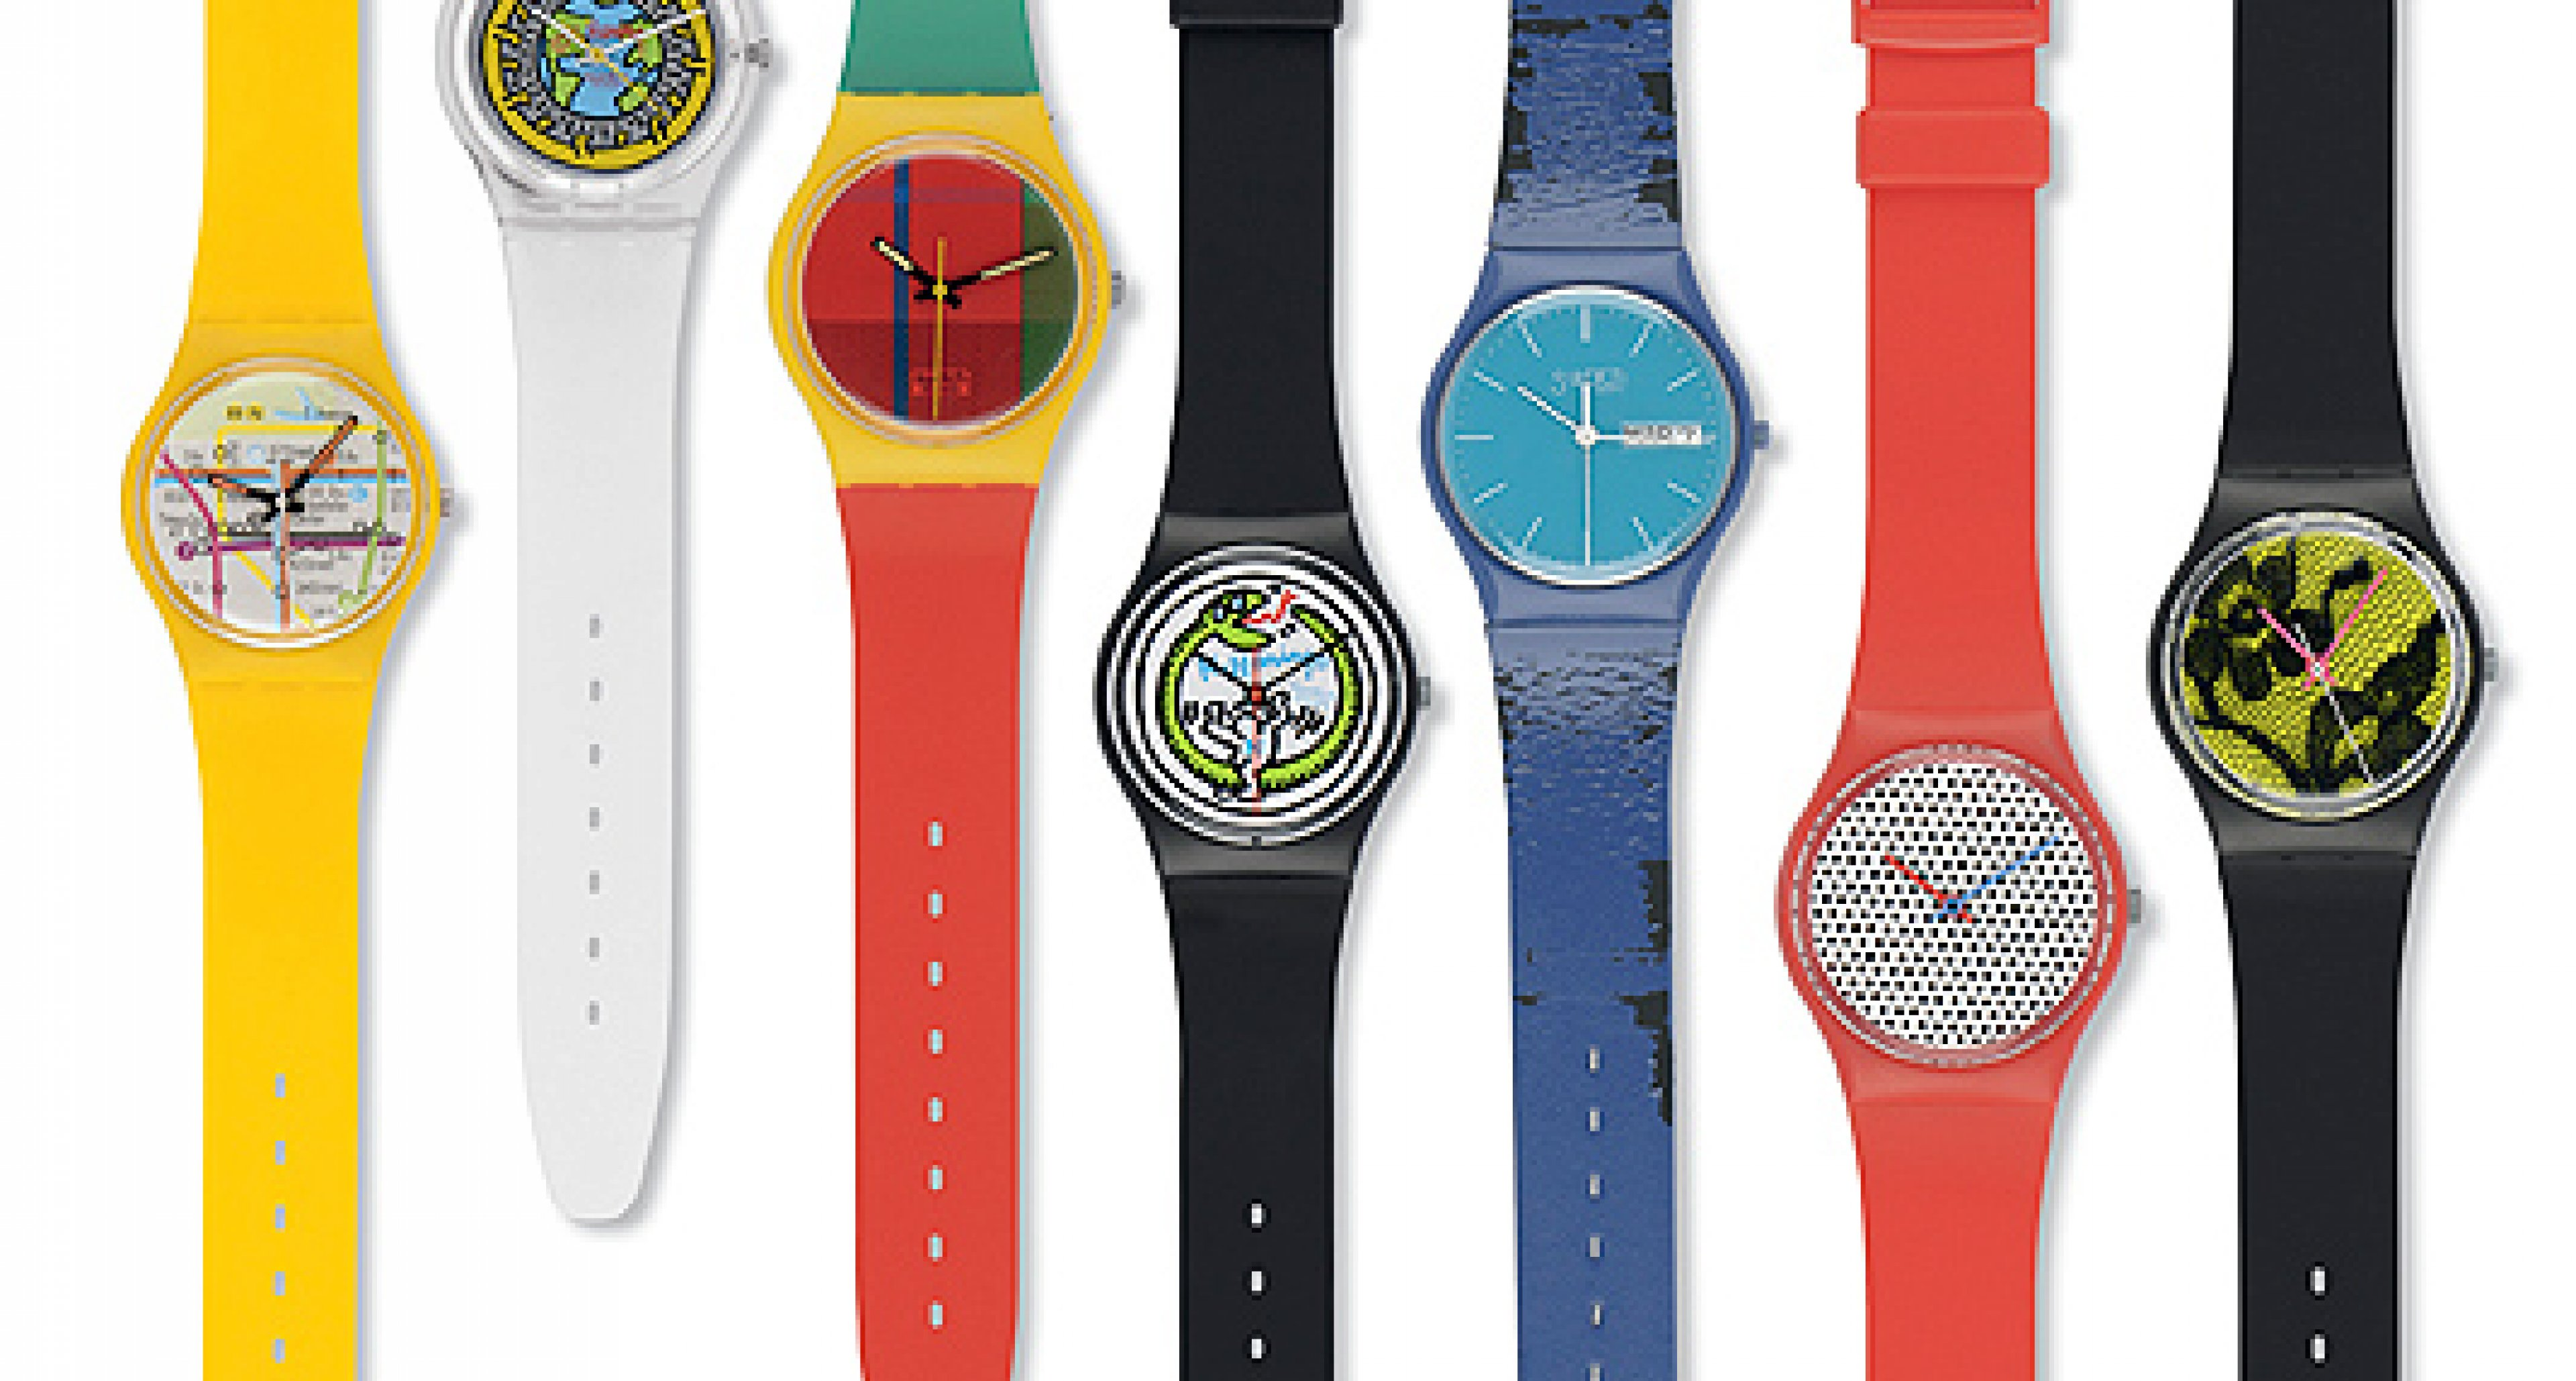 Swatch Auction in Hong Kong: $6.3m estimate